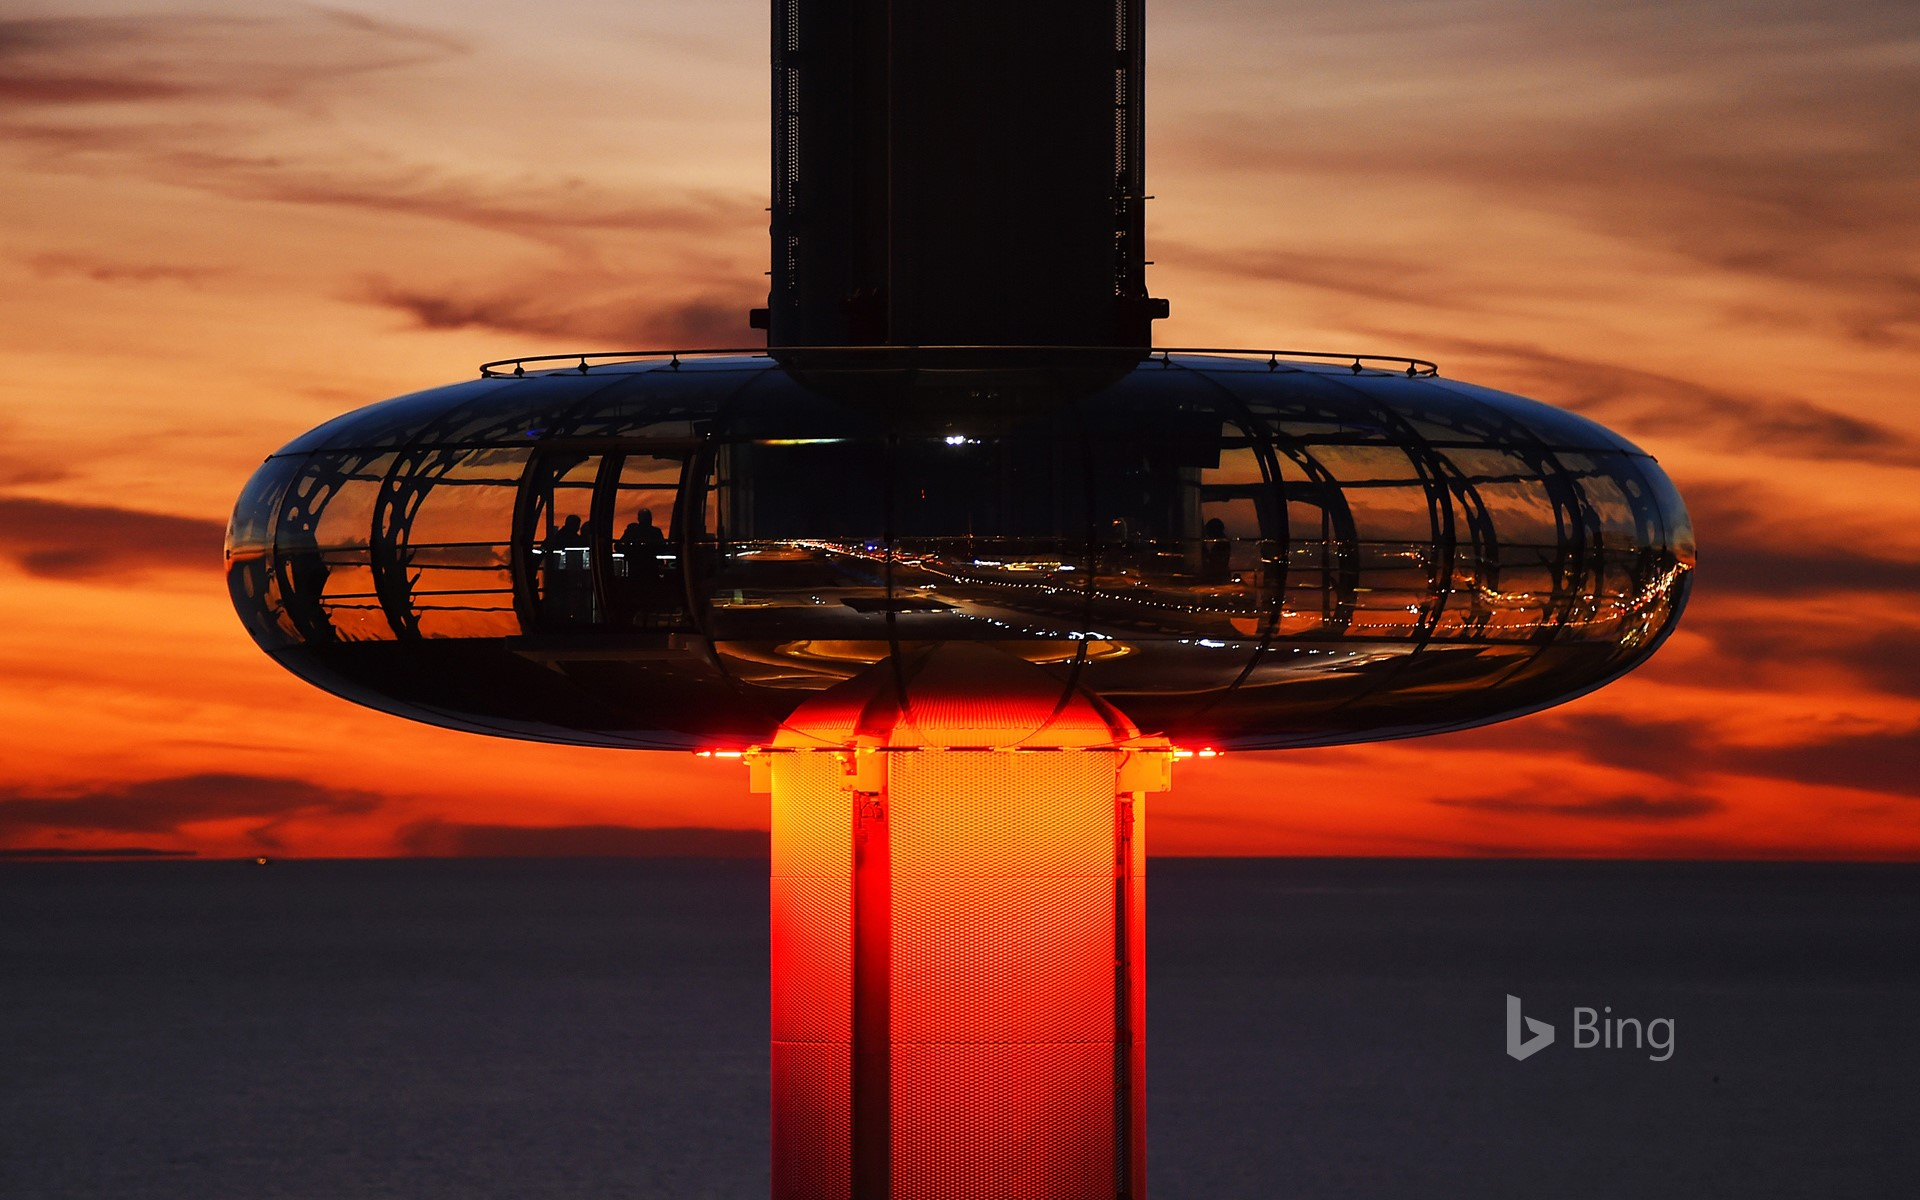 The British Airways i360 tower at dusk on the seafront of Brighton